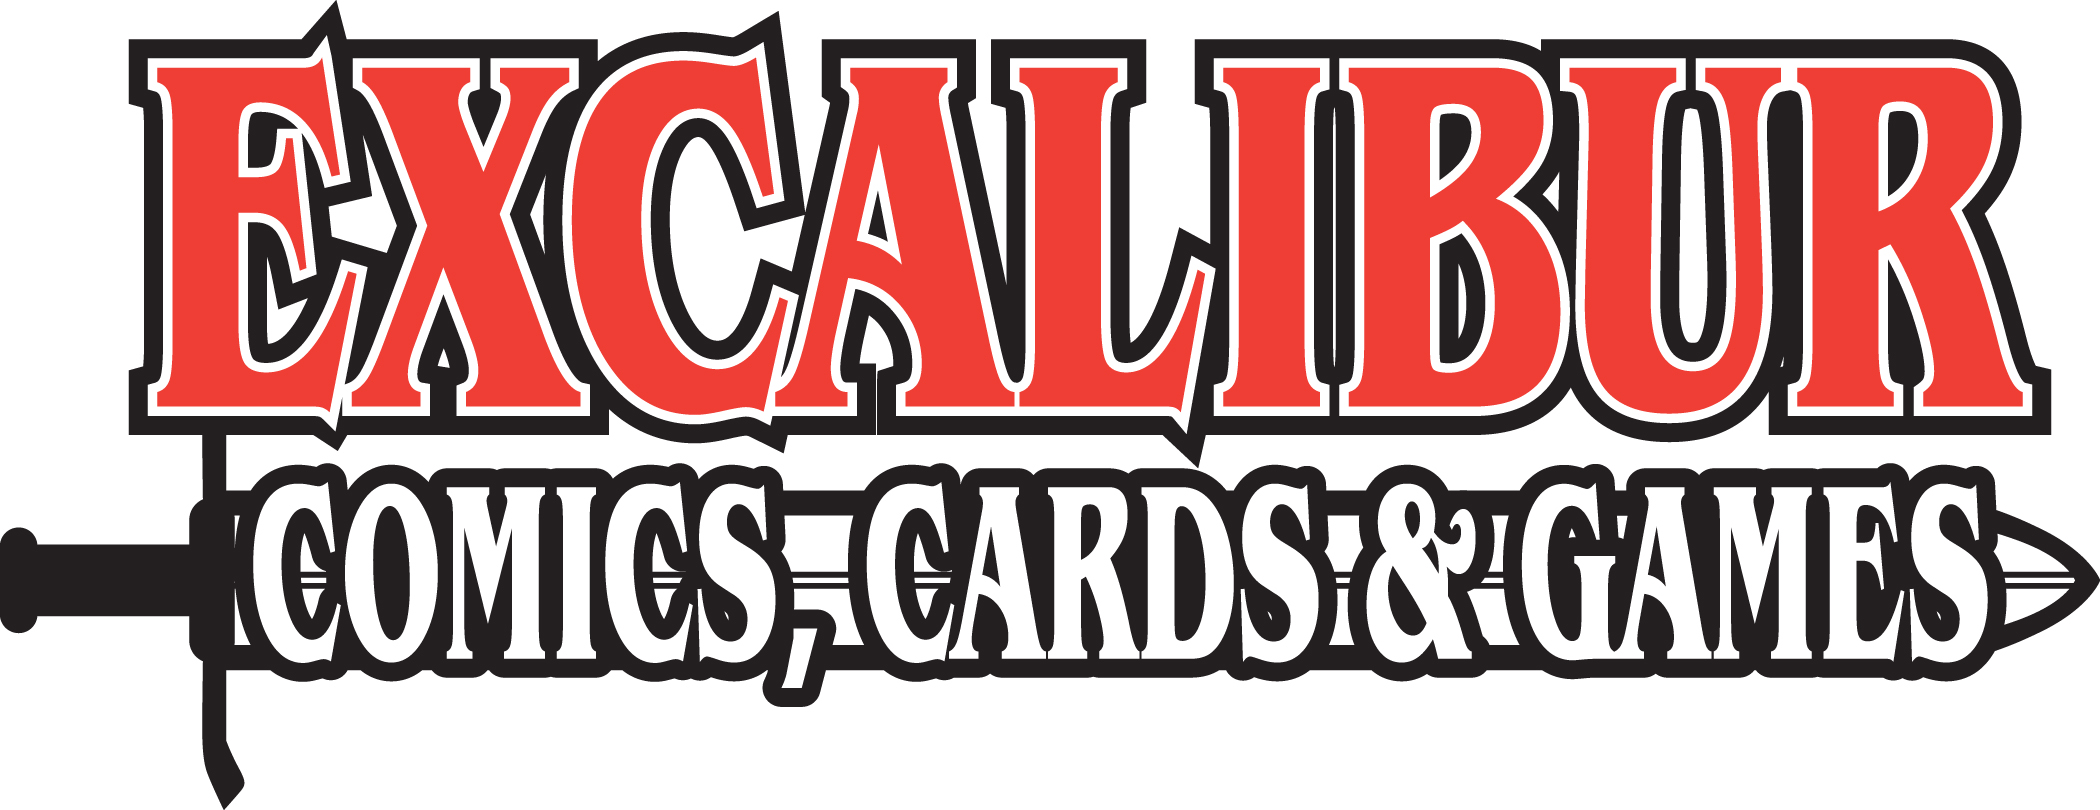 Excalibur Comics, Cards, and Games!